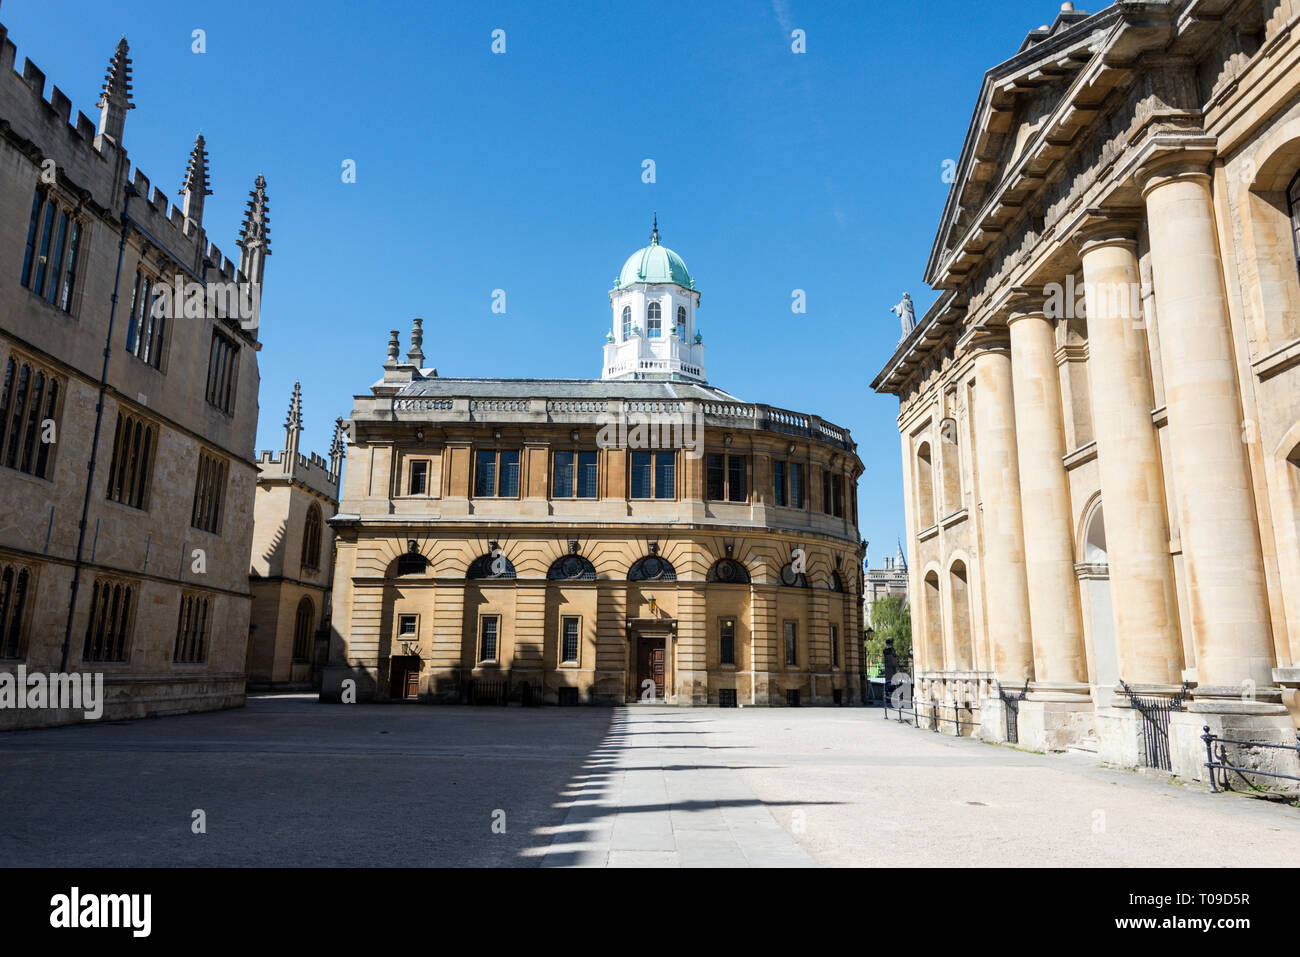 The Sheldonian Theatre with white dome in Oxford, Oxfordshire, Britain Stock Photo